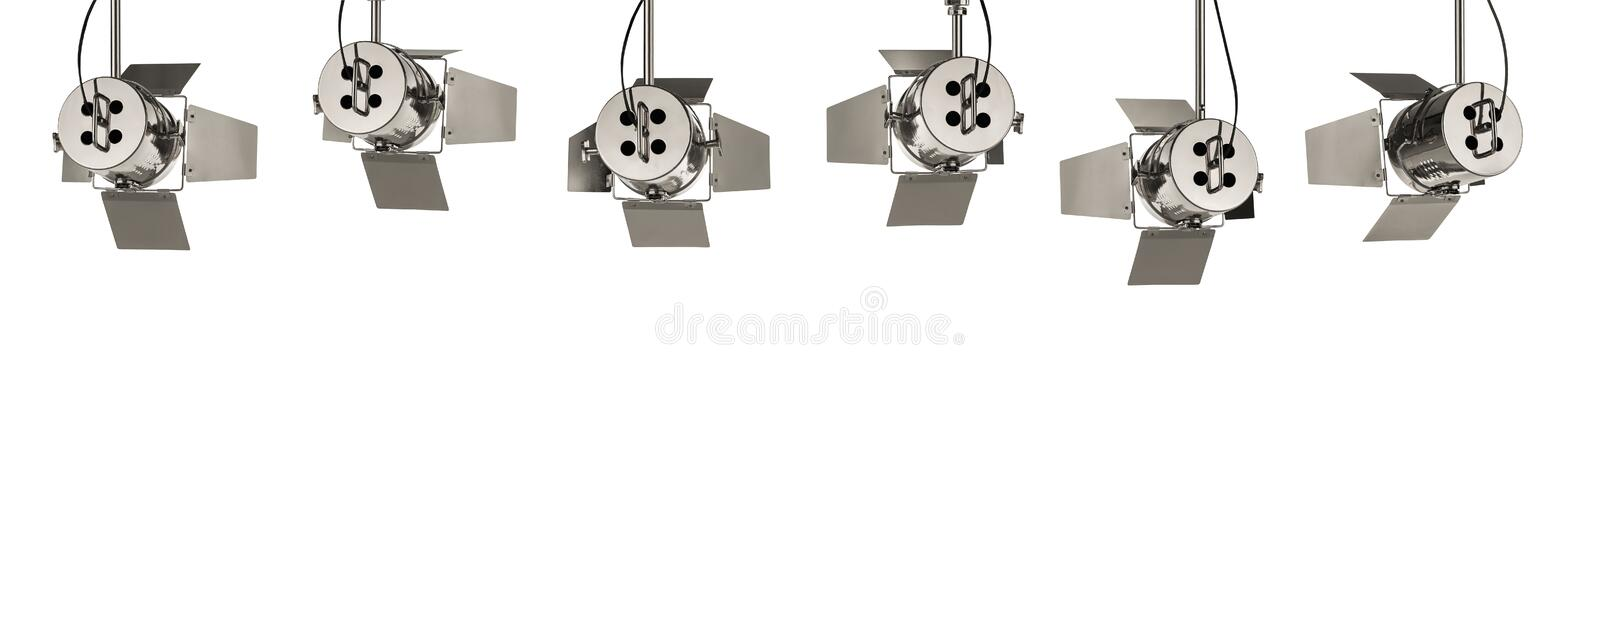 Retro stage lights isolated on white background royalty free stock images